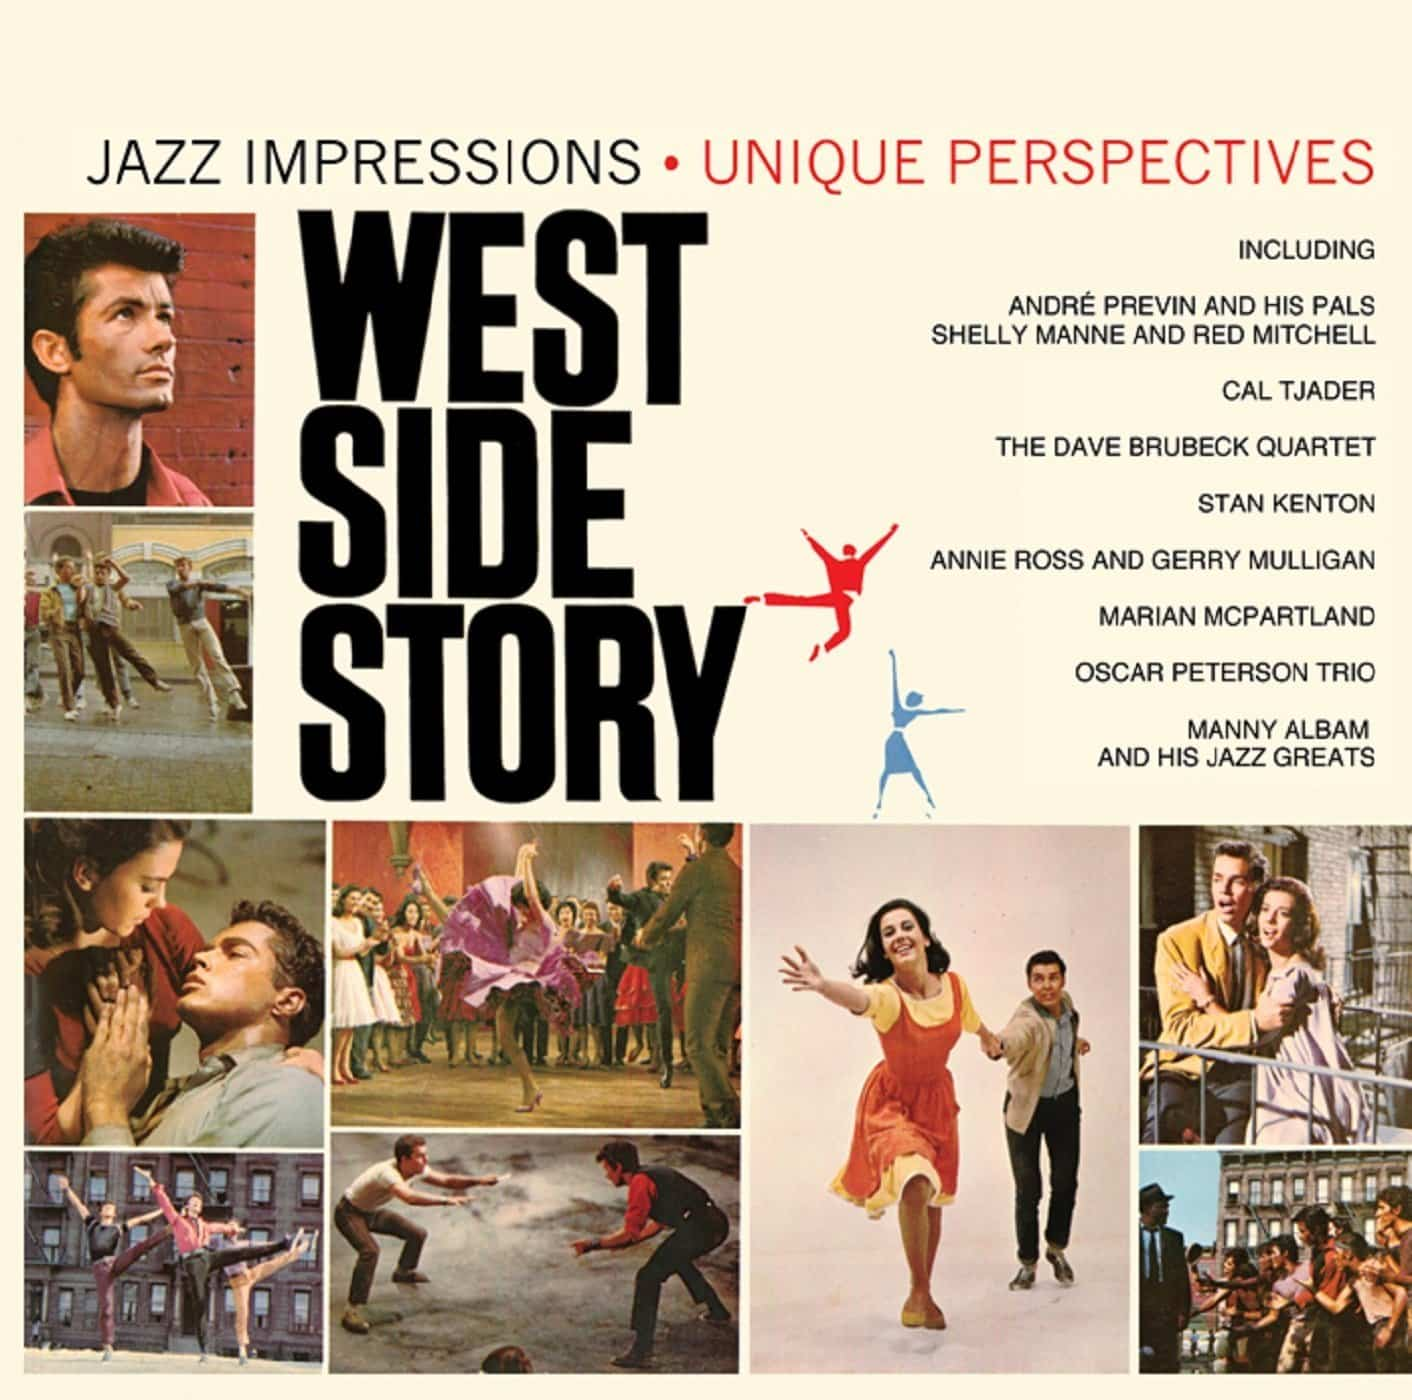 west side story prologue essay essay something s coming atildecopyl salutes west side story on new 2 cd set